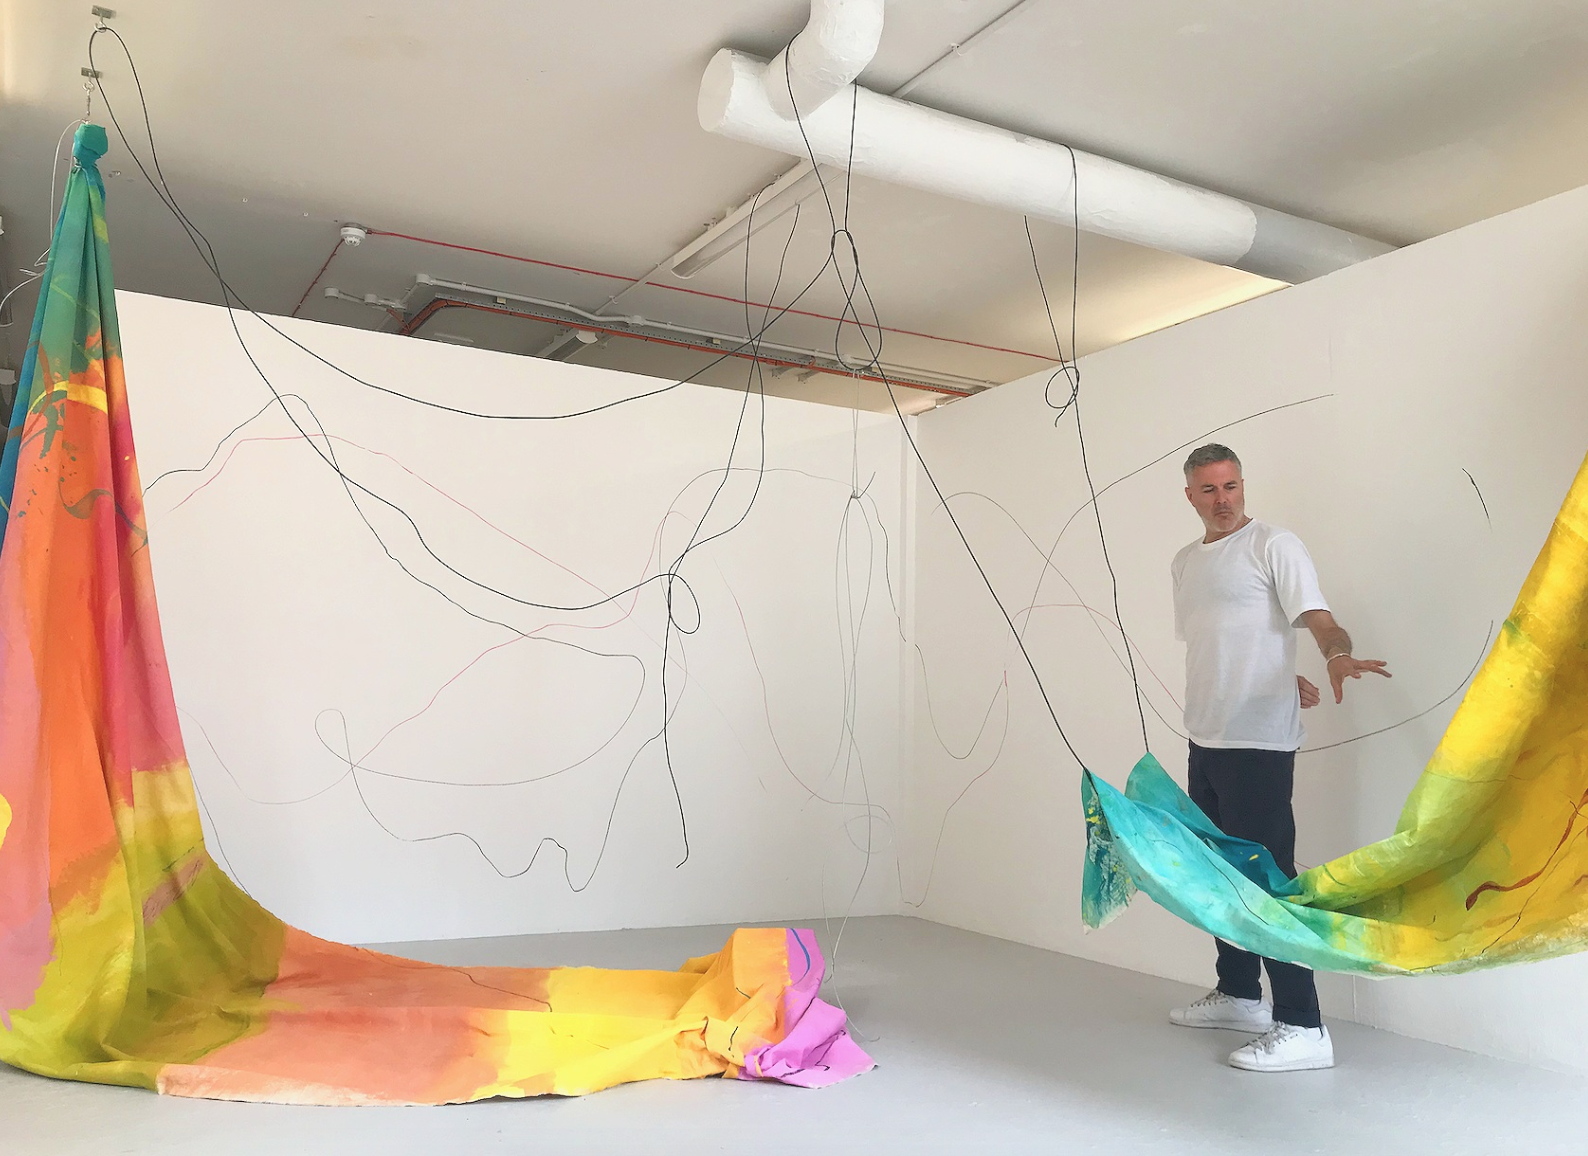 The artist Neil Tait engaging with the work. July 2019.